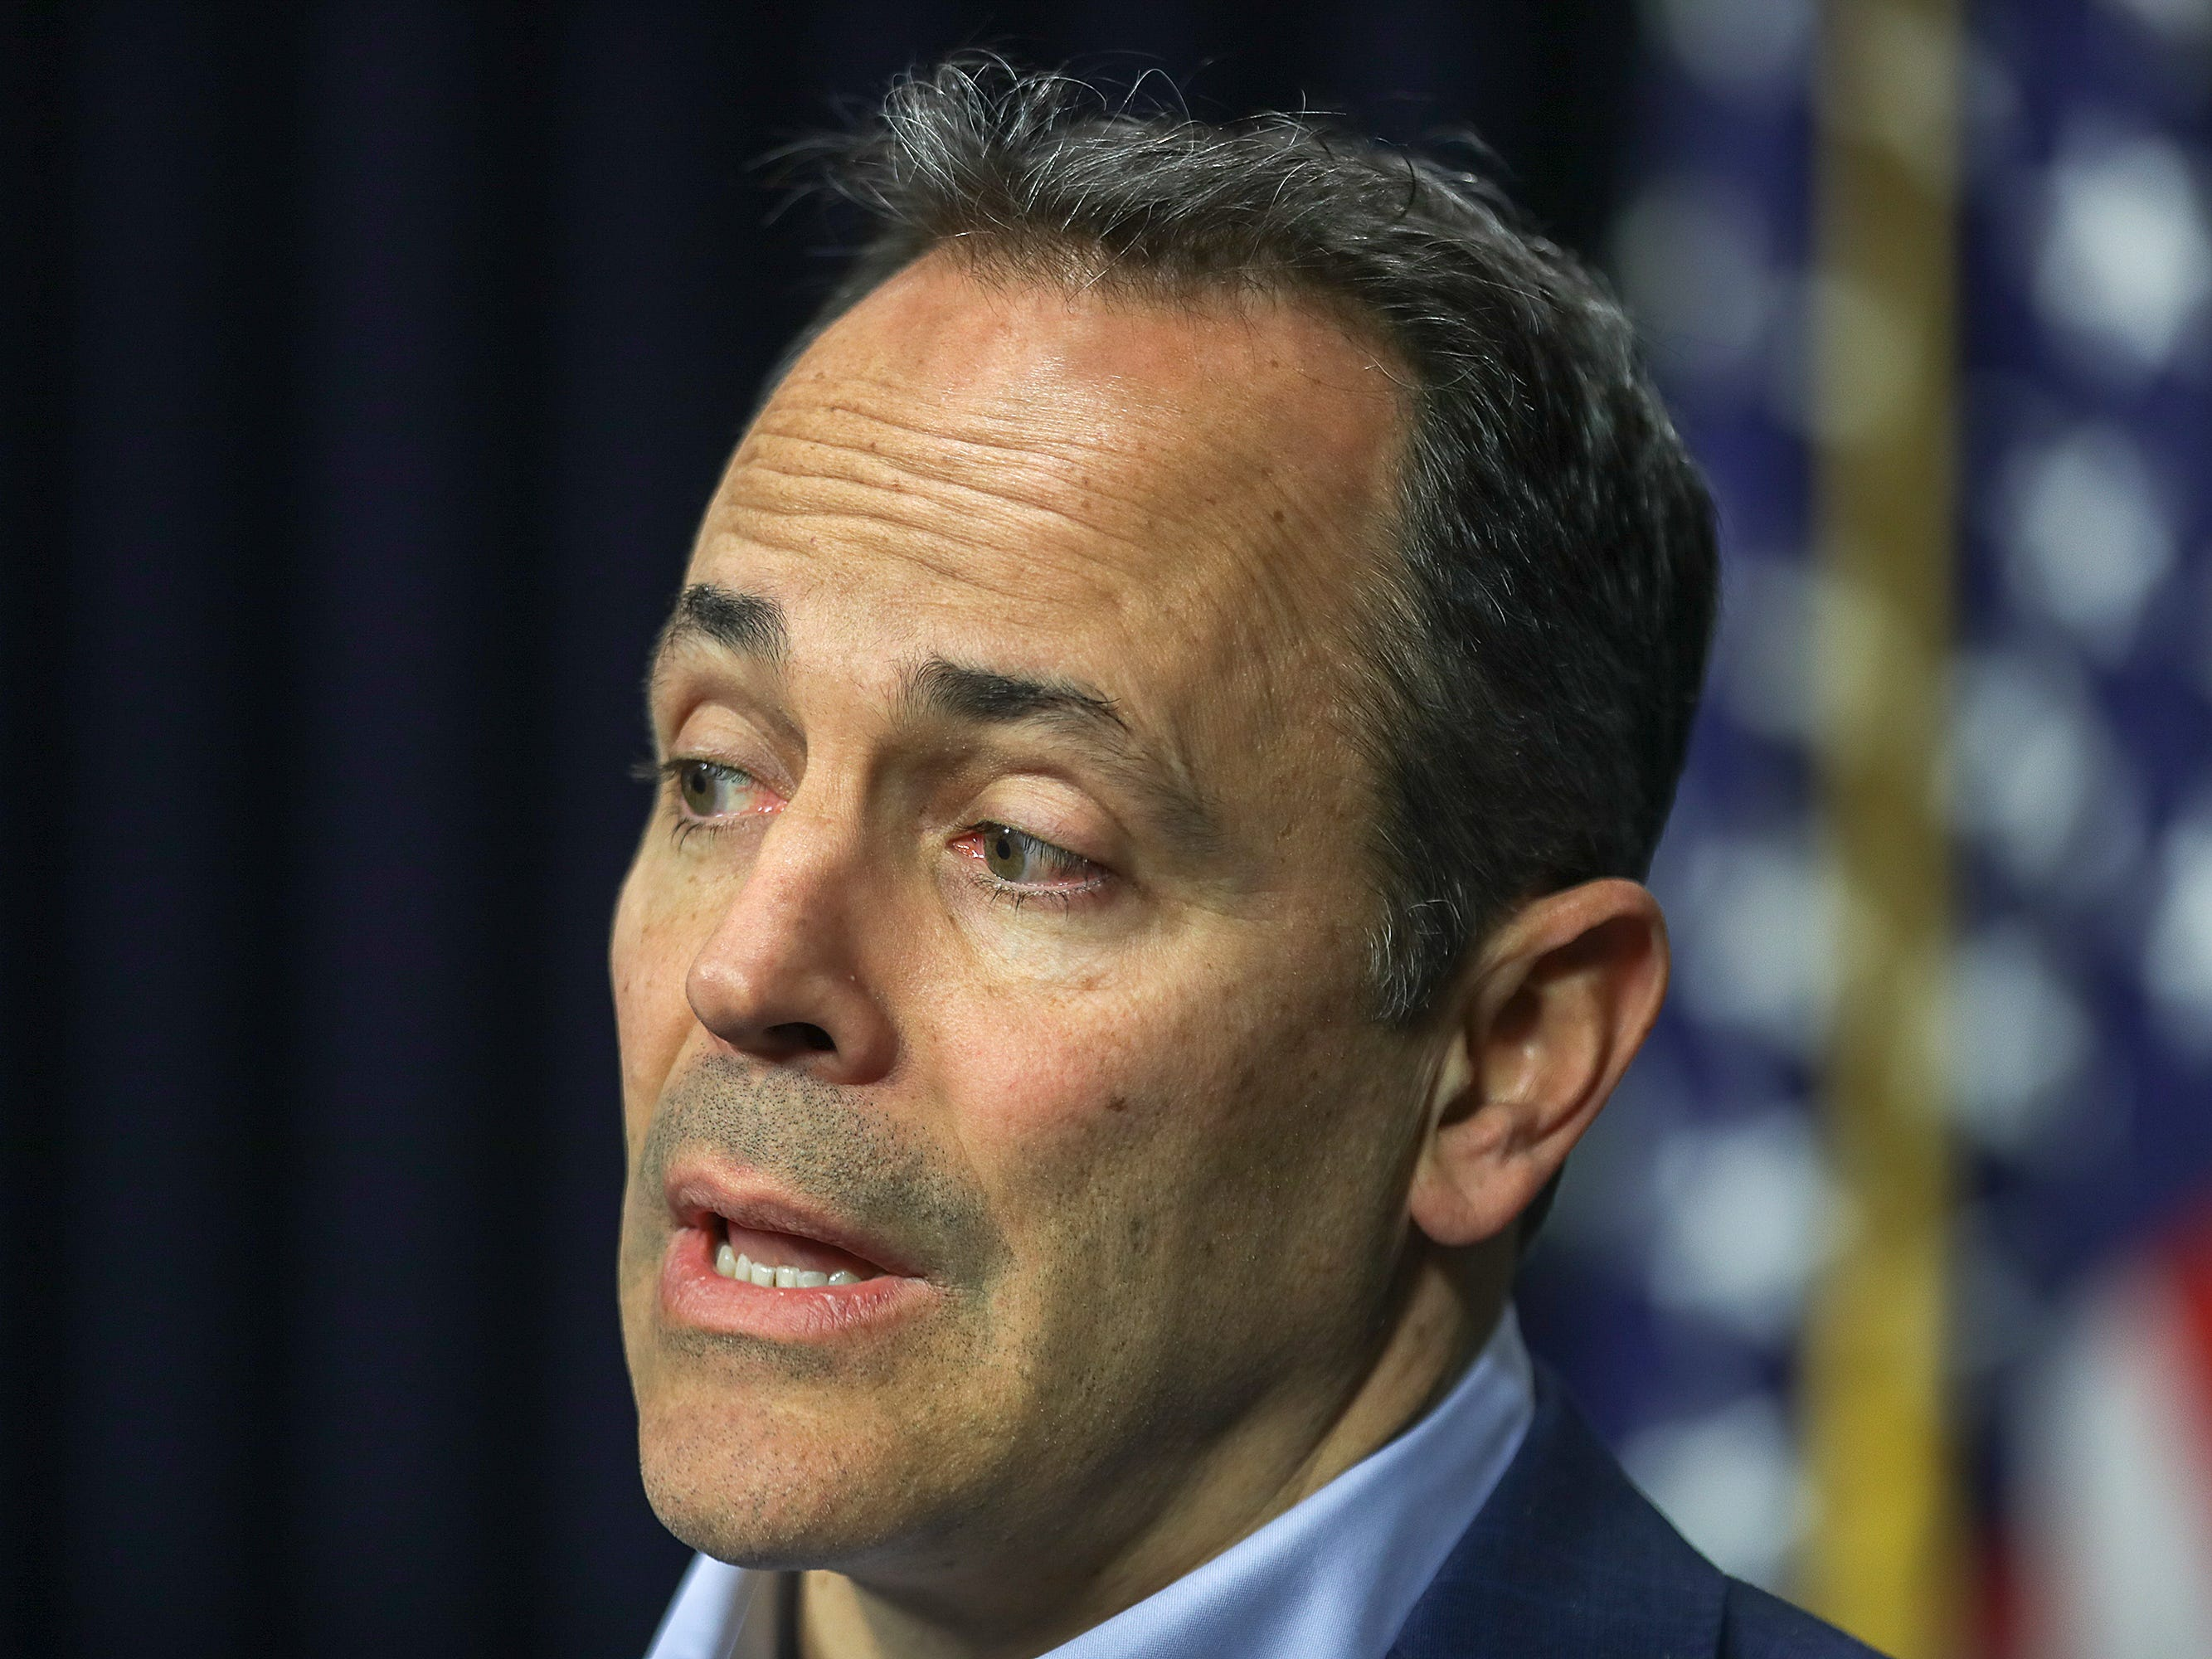 Gov. Matt Bevin speaks to the media about pension reform and the Kentucky Supreme Court ruling that struck down proposals set forth by the governor to fund the system. December 13, 2018